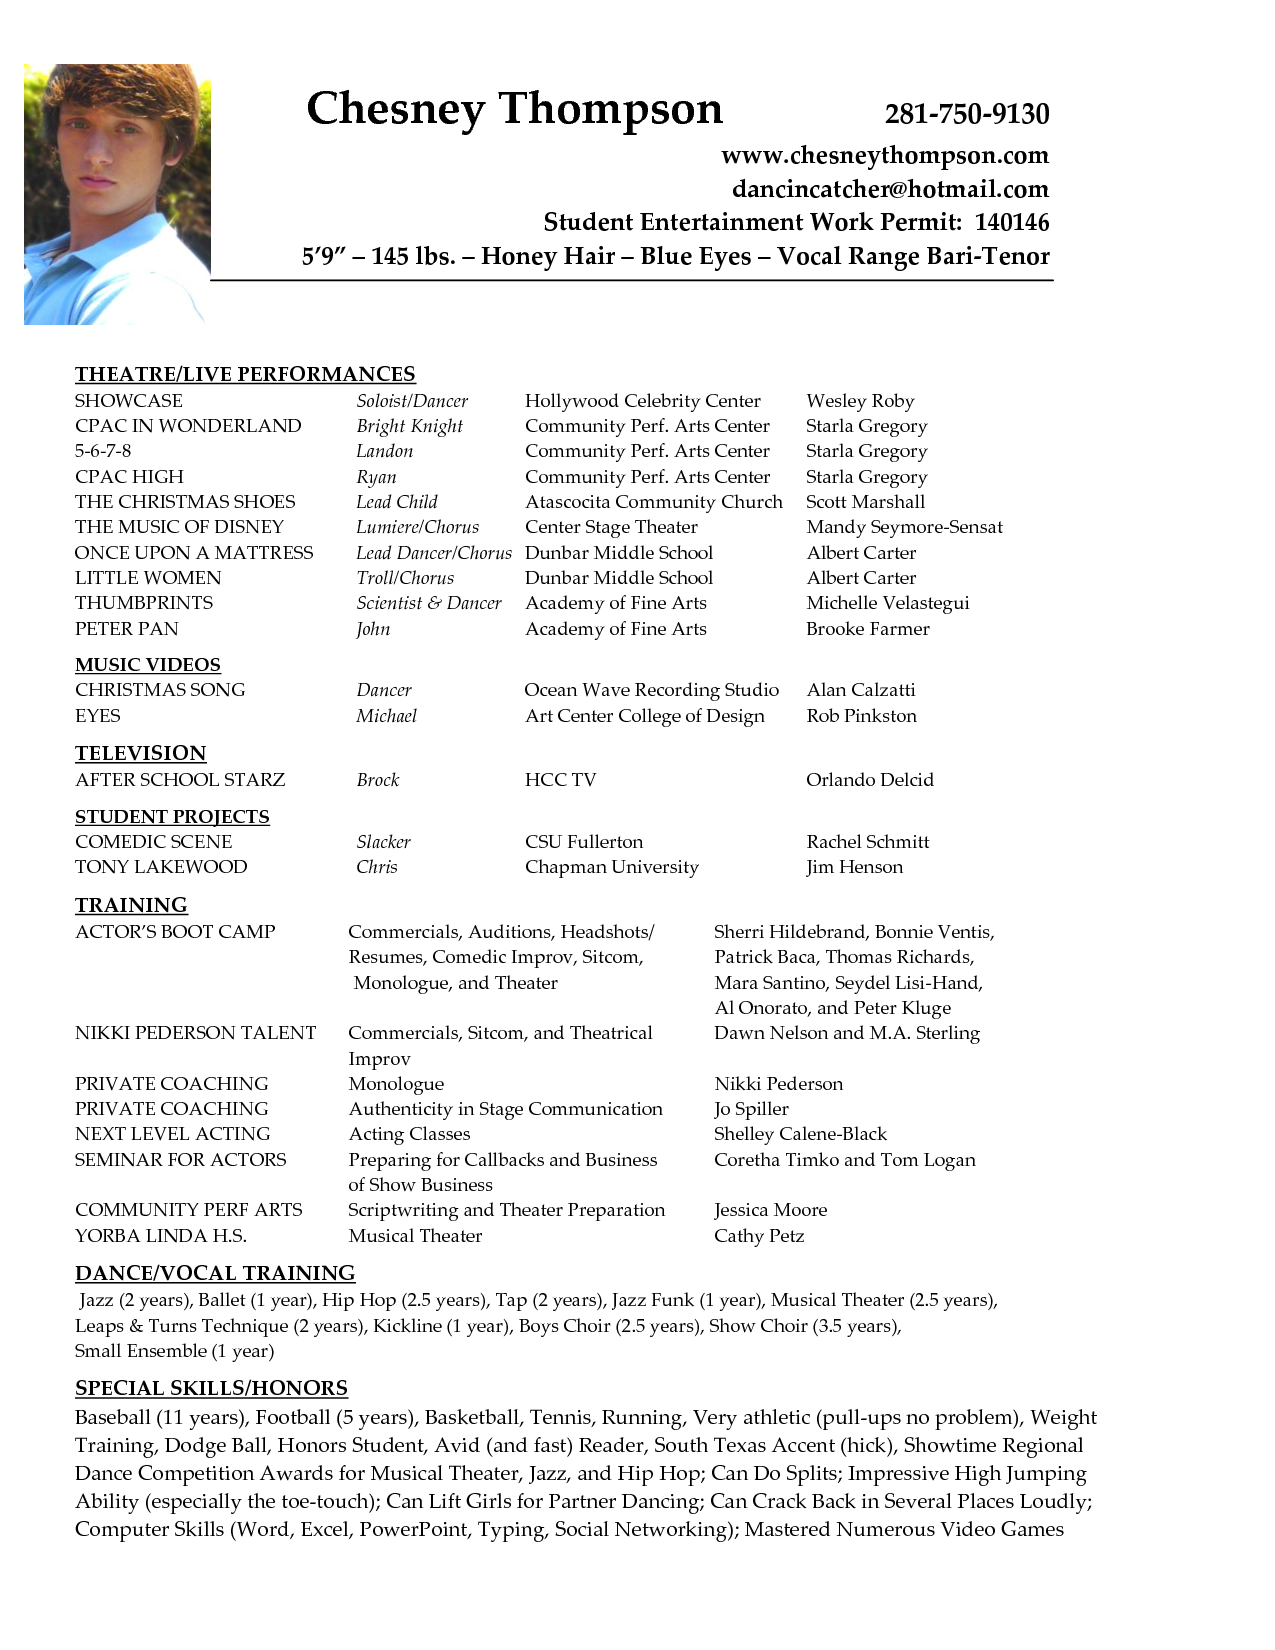 Theatre Resume Template Theatre Resume Template Builder Dfdqkmt Barb Jones Photography